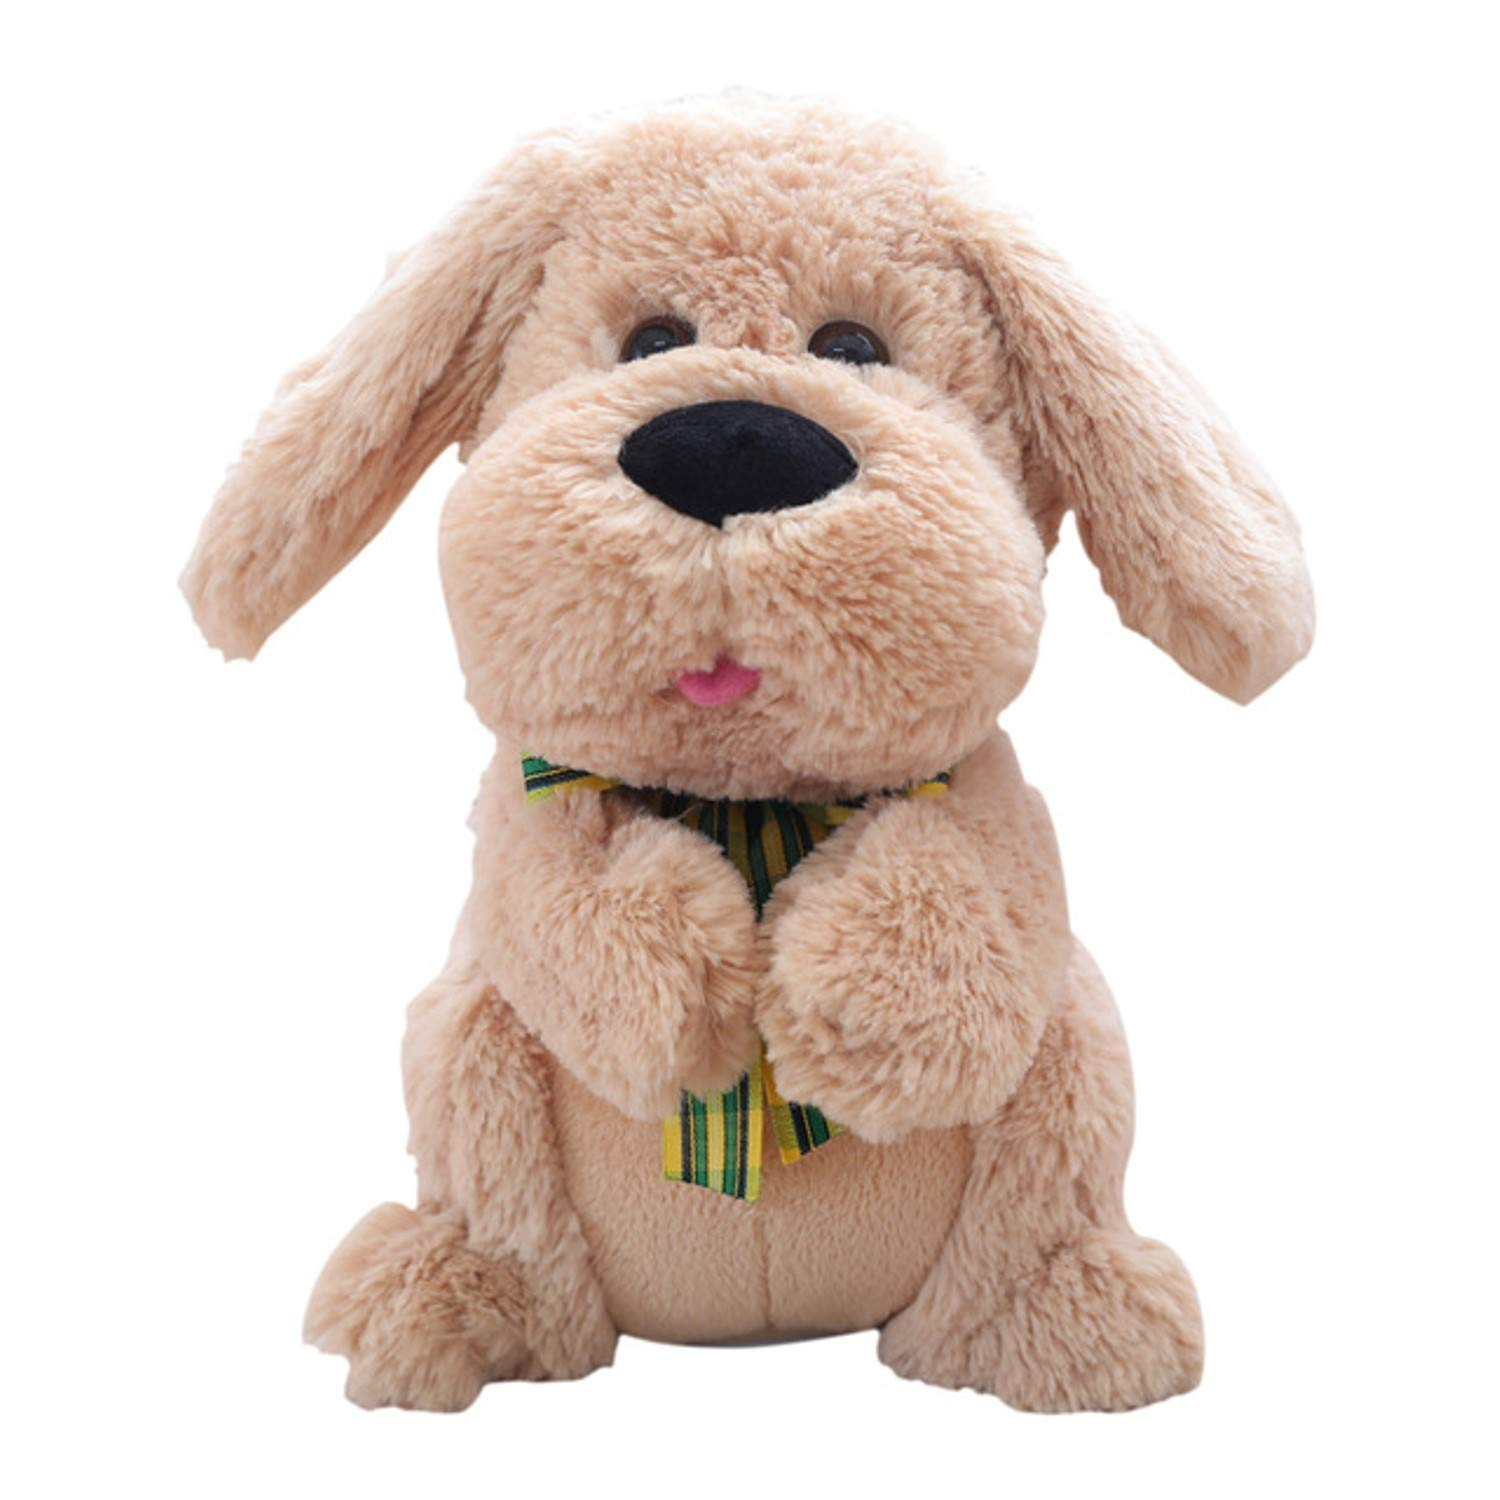 Amazon.com: JEWH [1PCS 28CM] Electrical Peek A Boo Dog Plush Stuffed Animals Singing Baby Music Toys Ears Flaping Move Interactive Doll Kids Gifts: Toys & ...